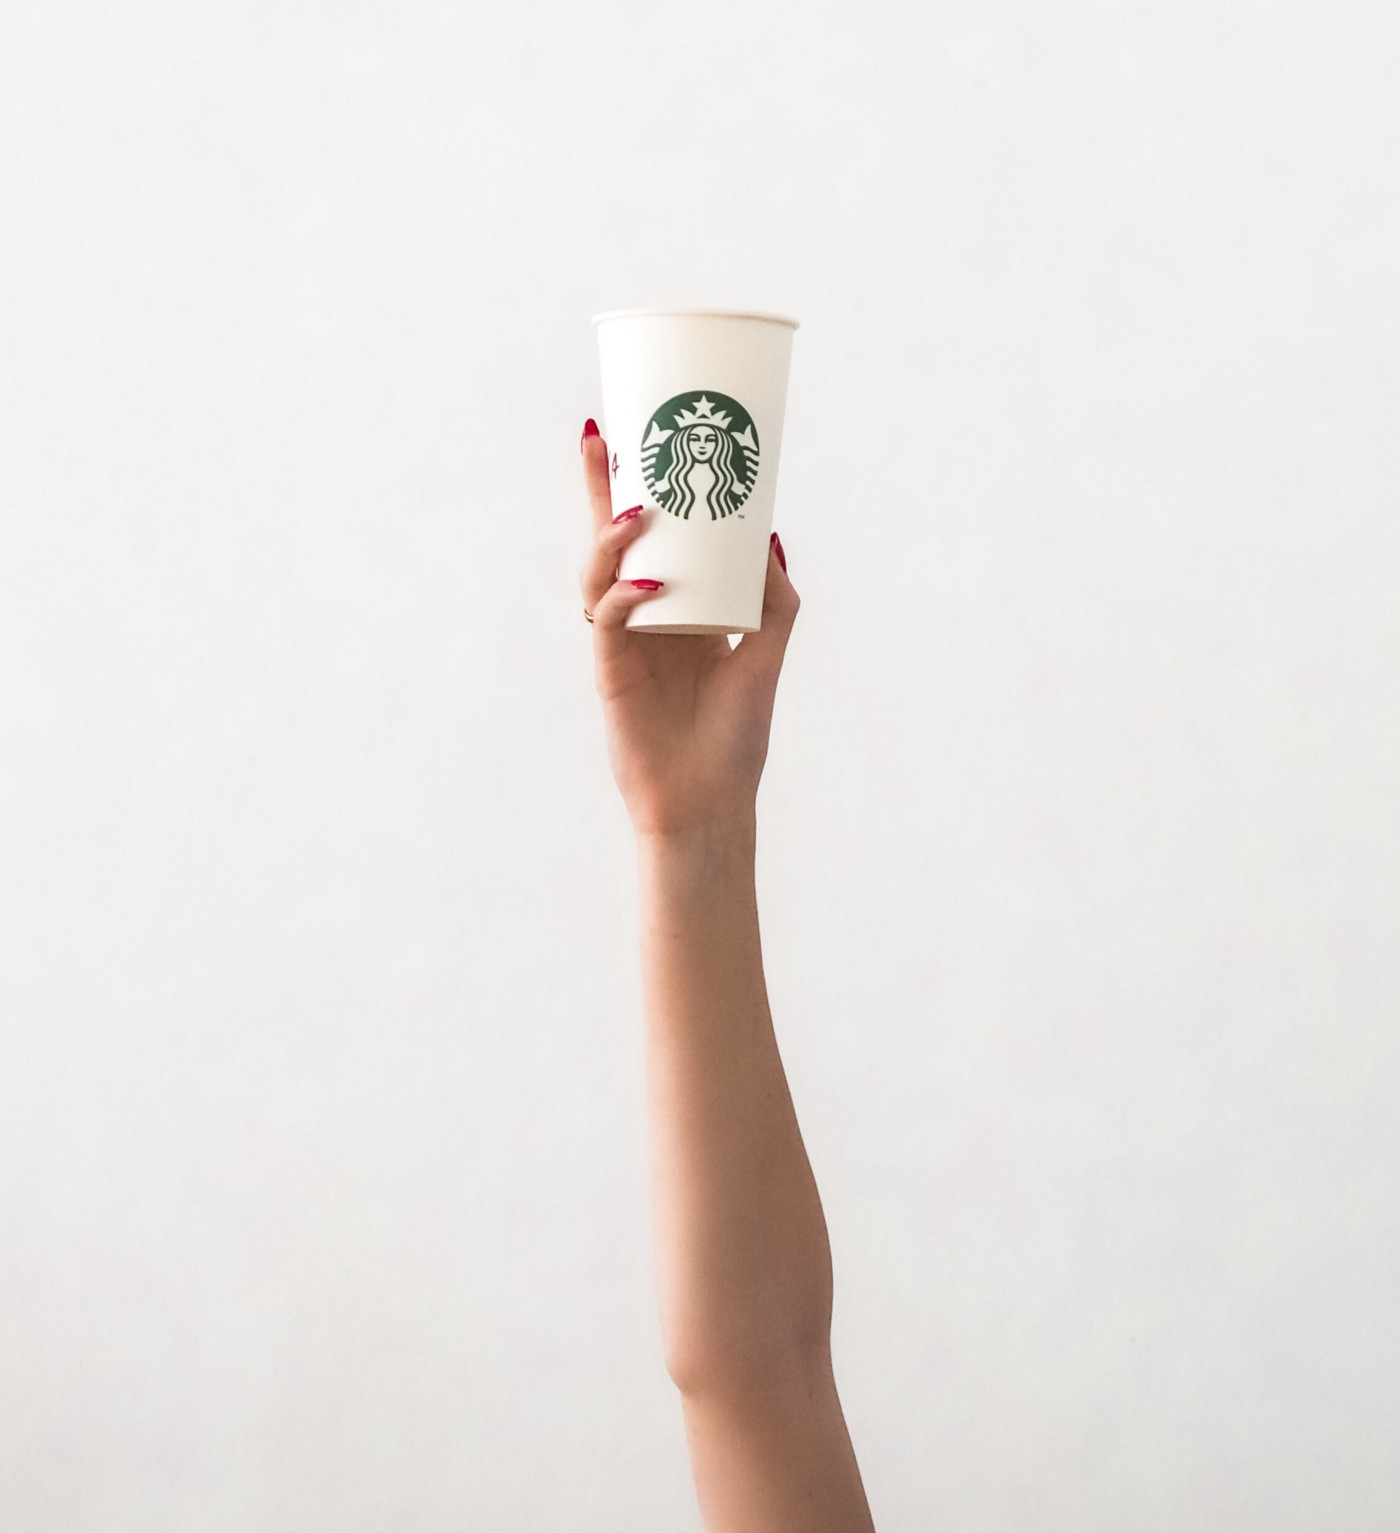 A feminine hand thrusting a Starbucks cup up into the air.